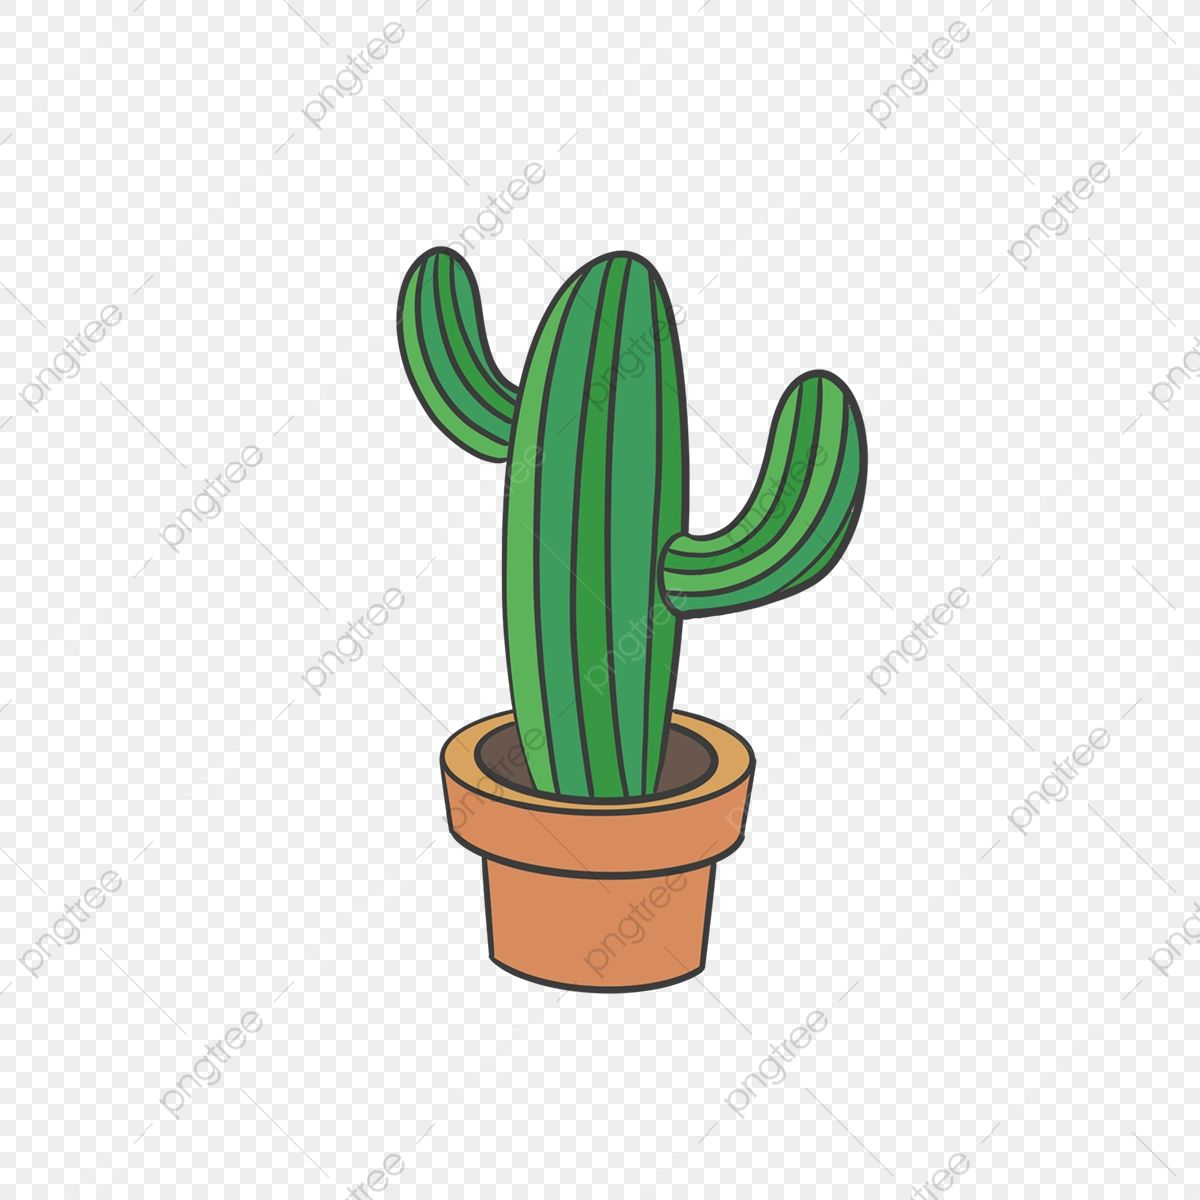 Hand Drawn Cute Cactus Cactus Cute Summer Png Transparent Clipart Image And Psd File For Free Download How To Draw Hands Cactus Cartoon Cactus Drawing